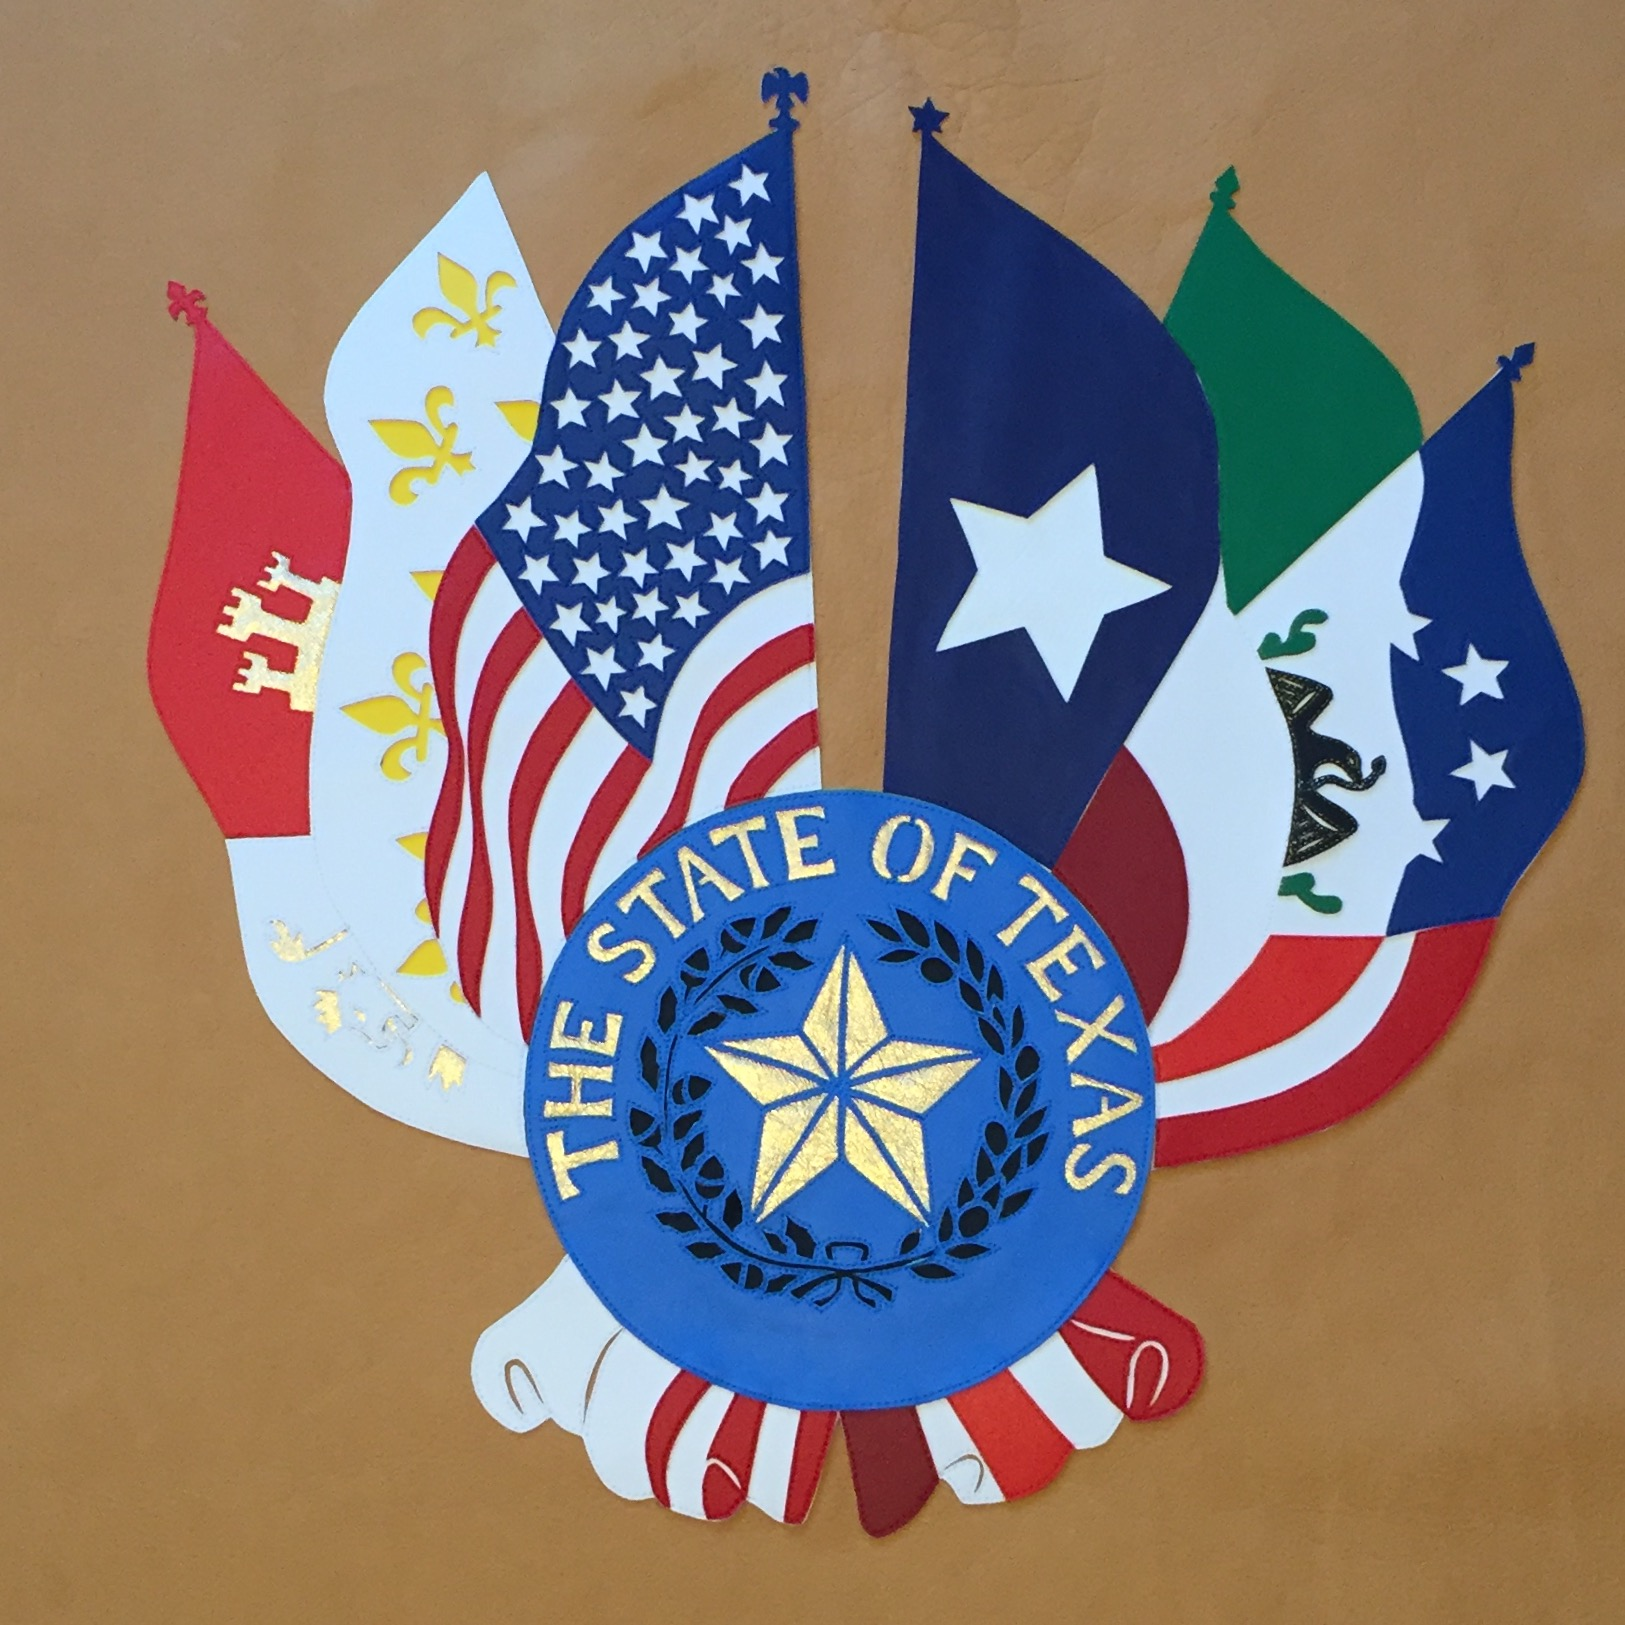 six flags and state seal of Texas